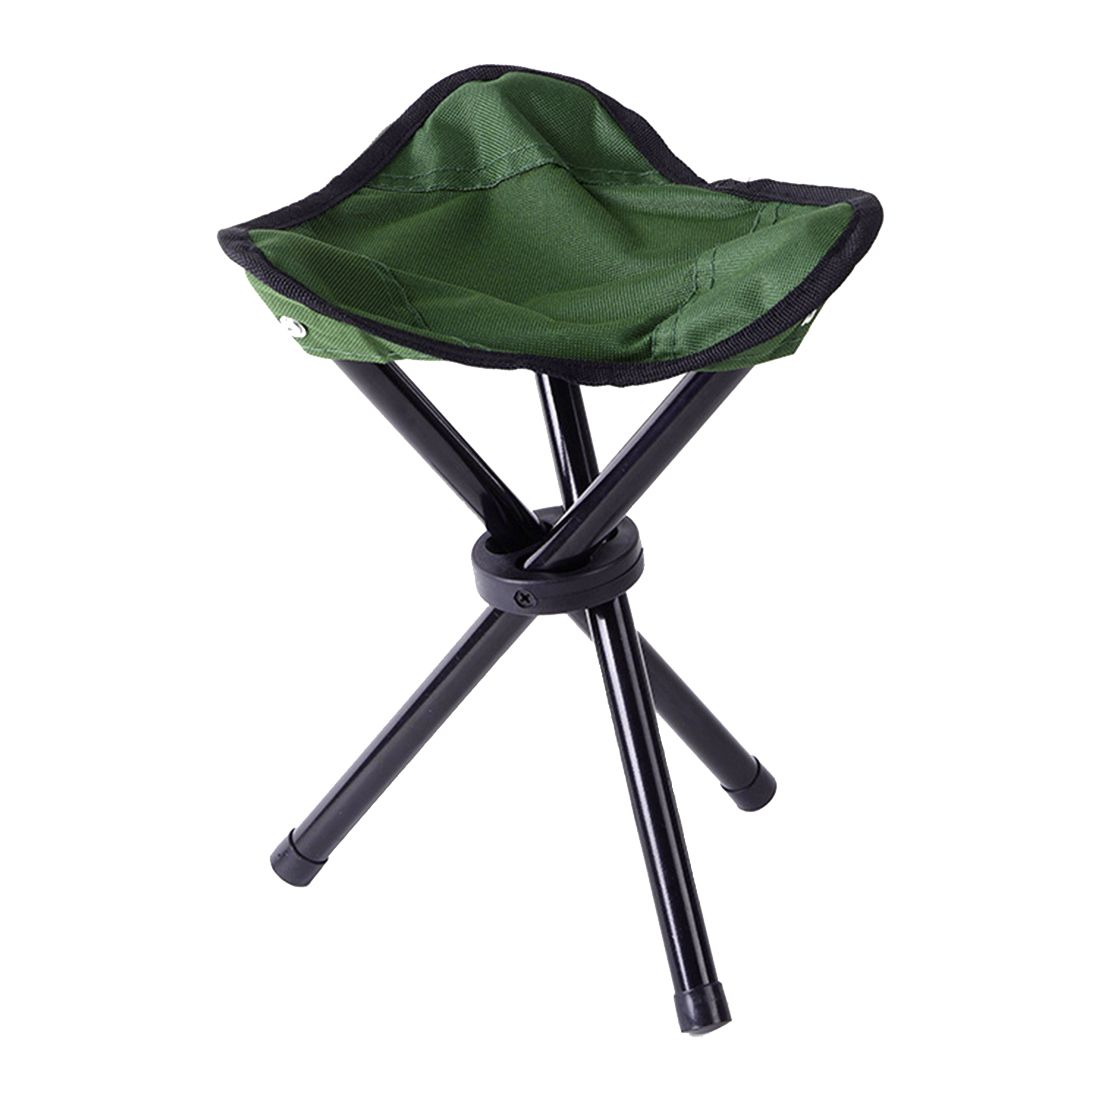 Sensational Folding Tripod Stool Outdoor Portable Camping Seat Lightweight Fishing Chair New In Fishing Chairs From Sports Entertainment On Aliexpress Com Inzonedesignstudio Interior Chair Design Inzonedesignstudiocom